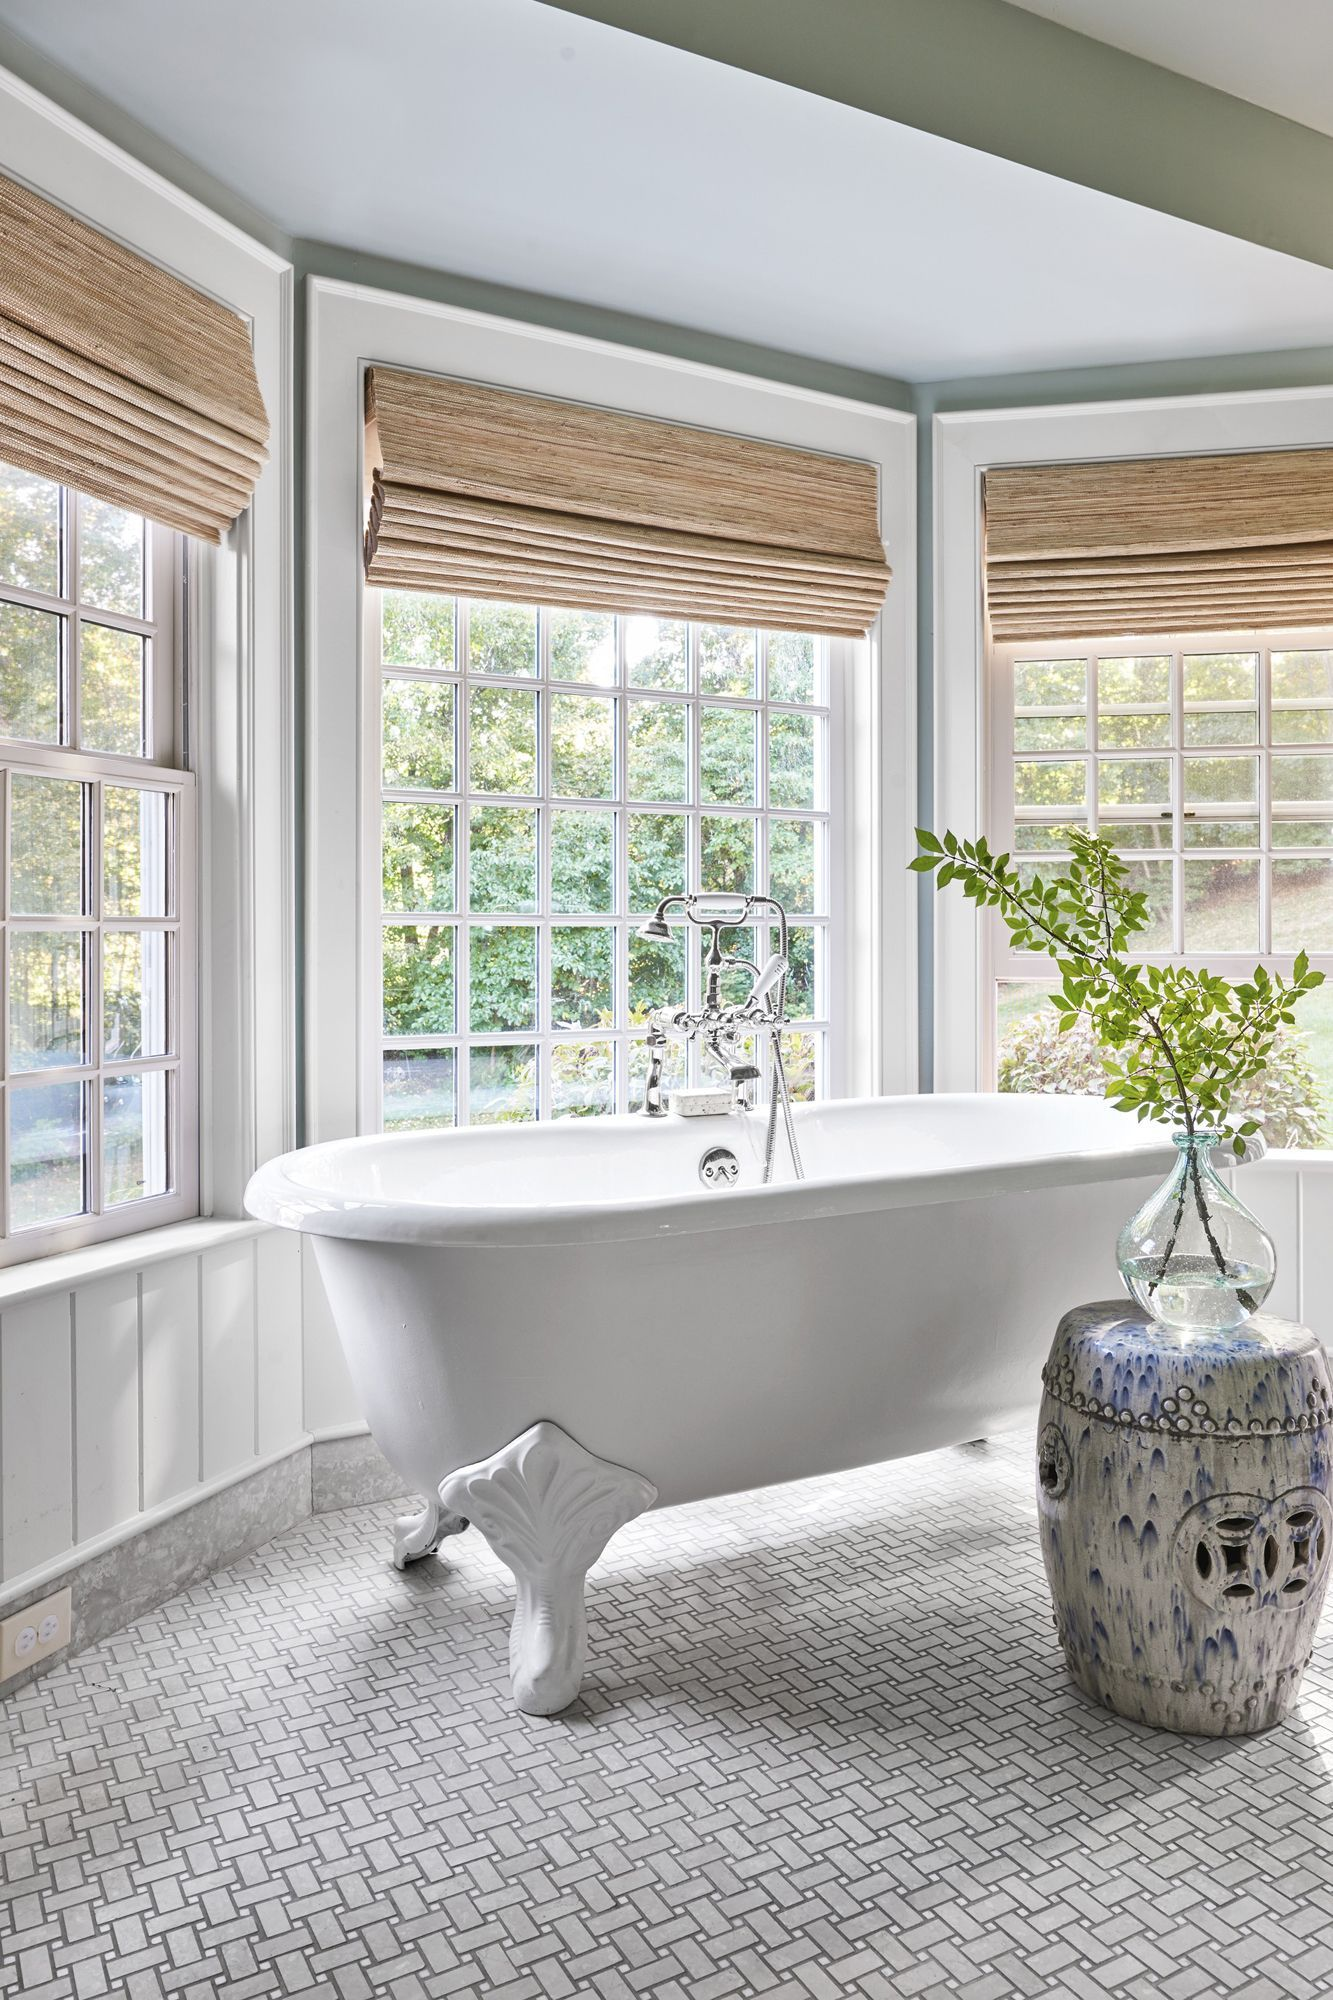 These Beautiful Bathroom Tile Ideas Will Make You Want To ...